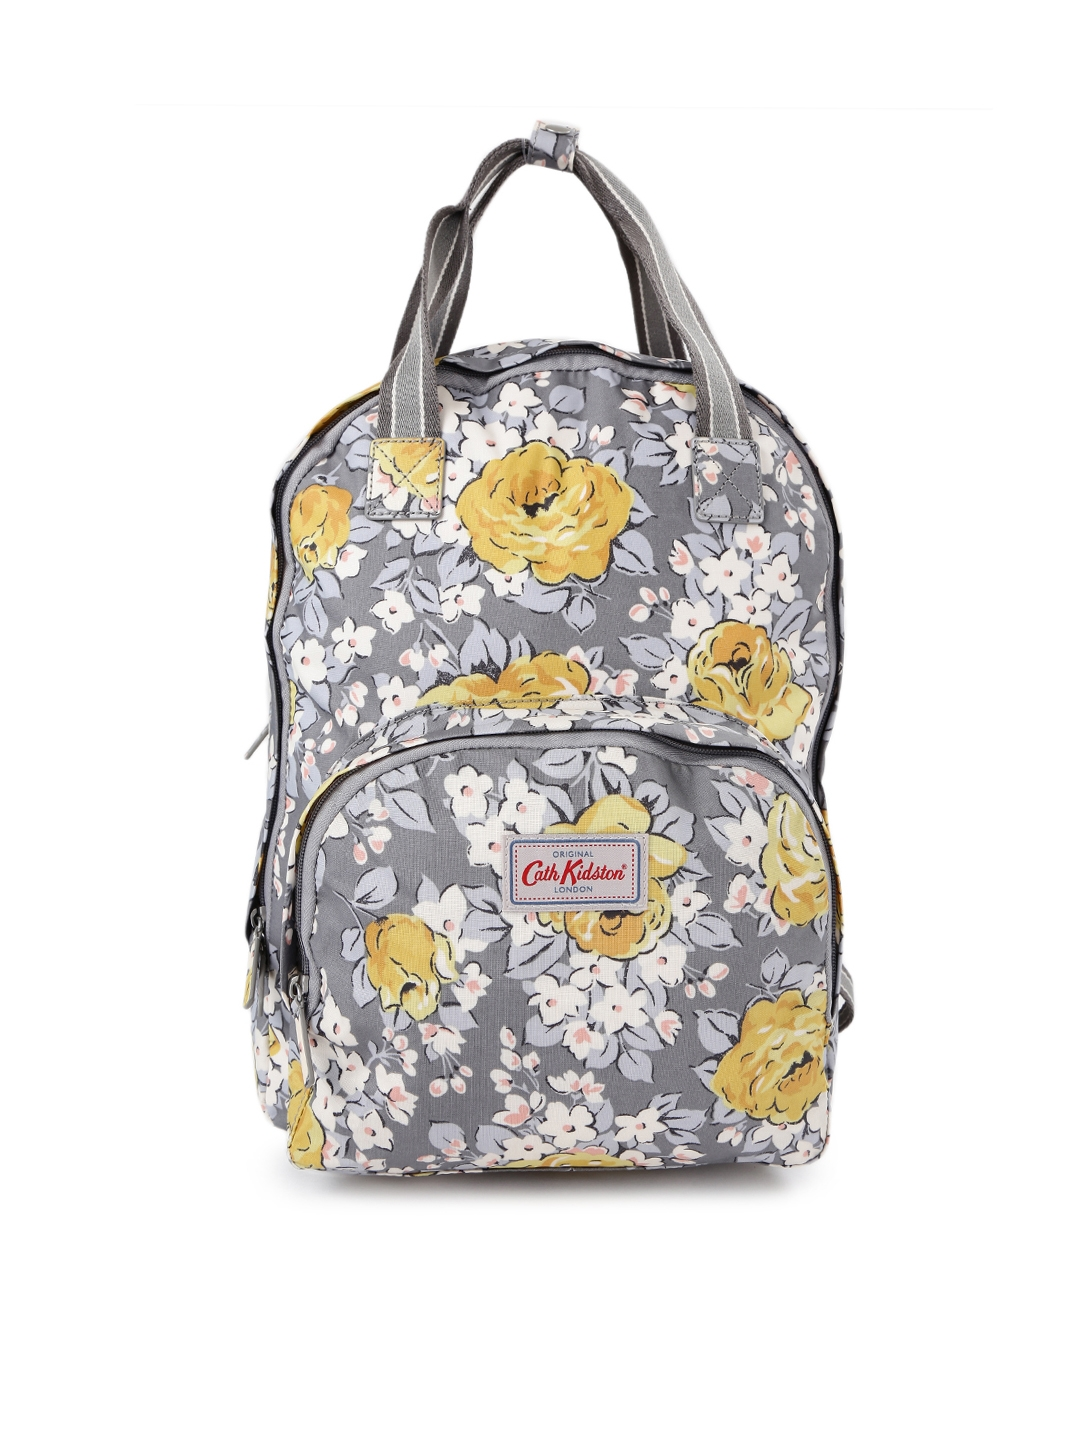 3f24f64dc8 Buy Cath Kidston Women Grey   Yellow Floral Print Backpack ...